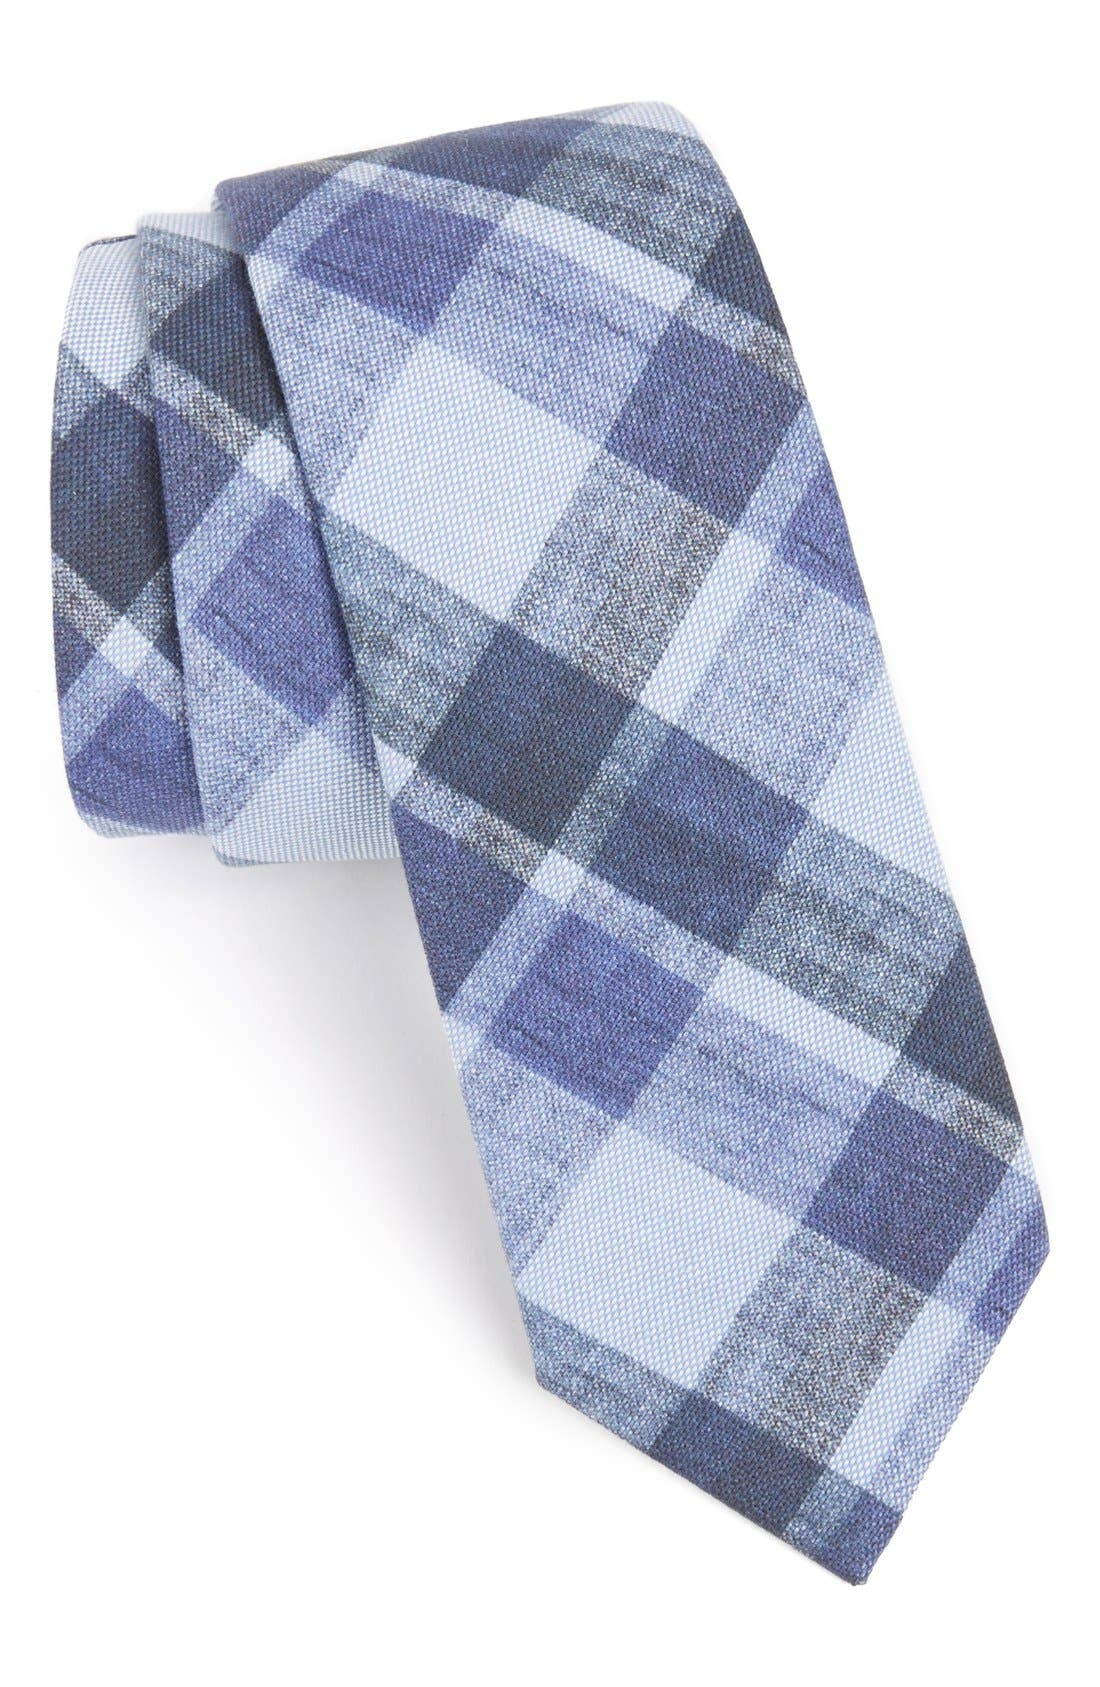 Main Image - Gitman Blue Plaid Denim Tie